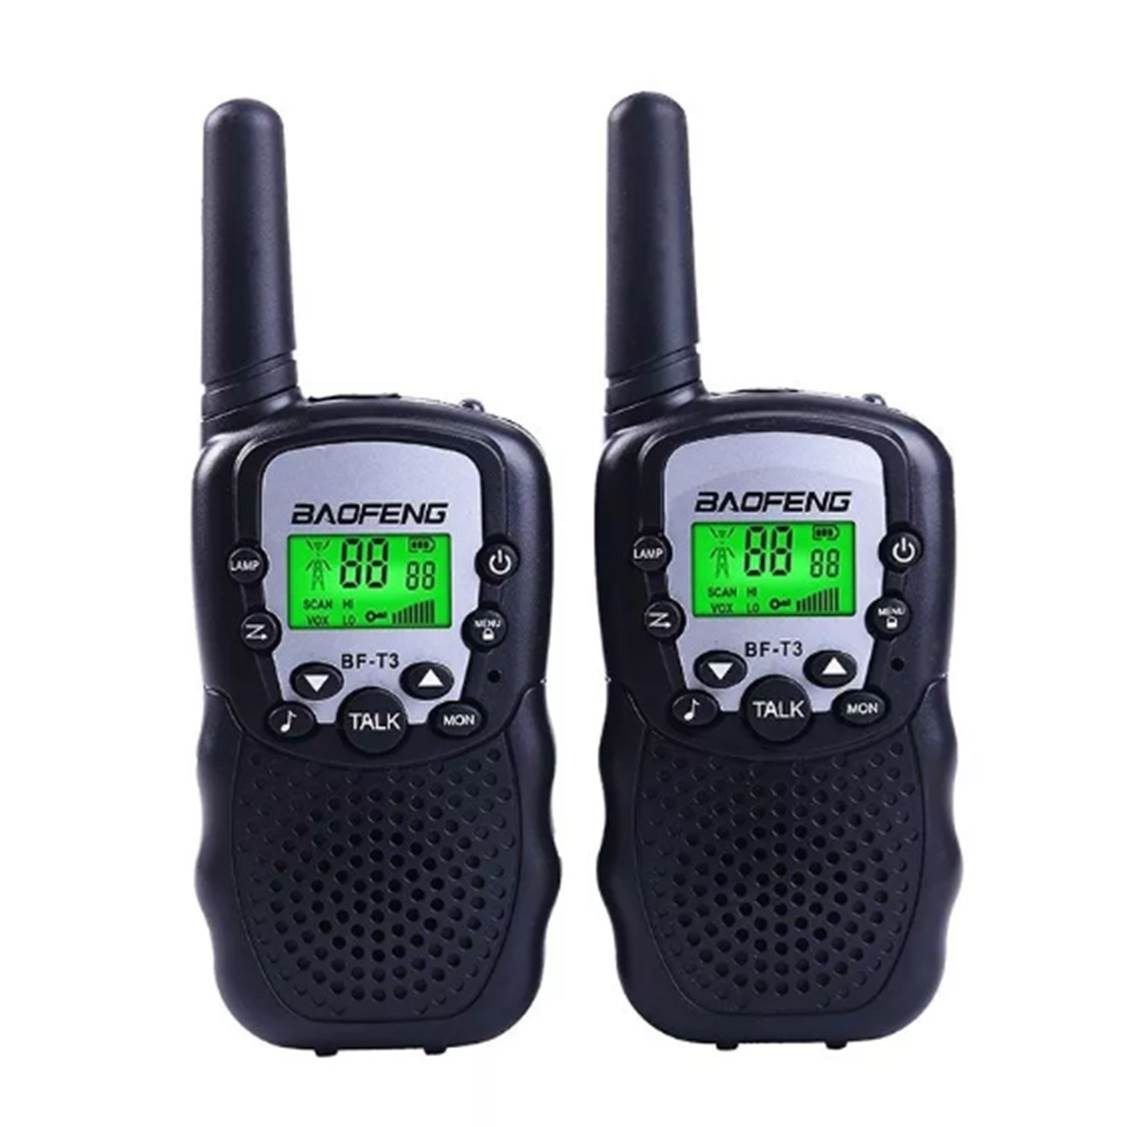 Rádio Comunicador Mini Walkie Talkie Baofeng Bf-t3